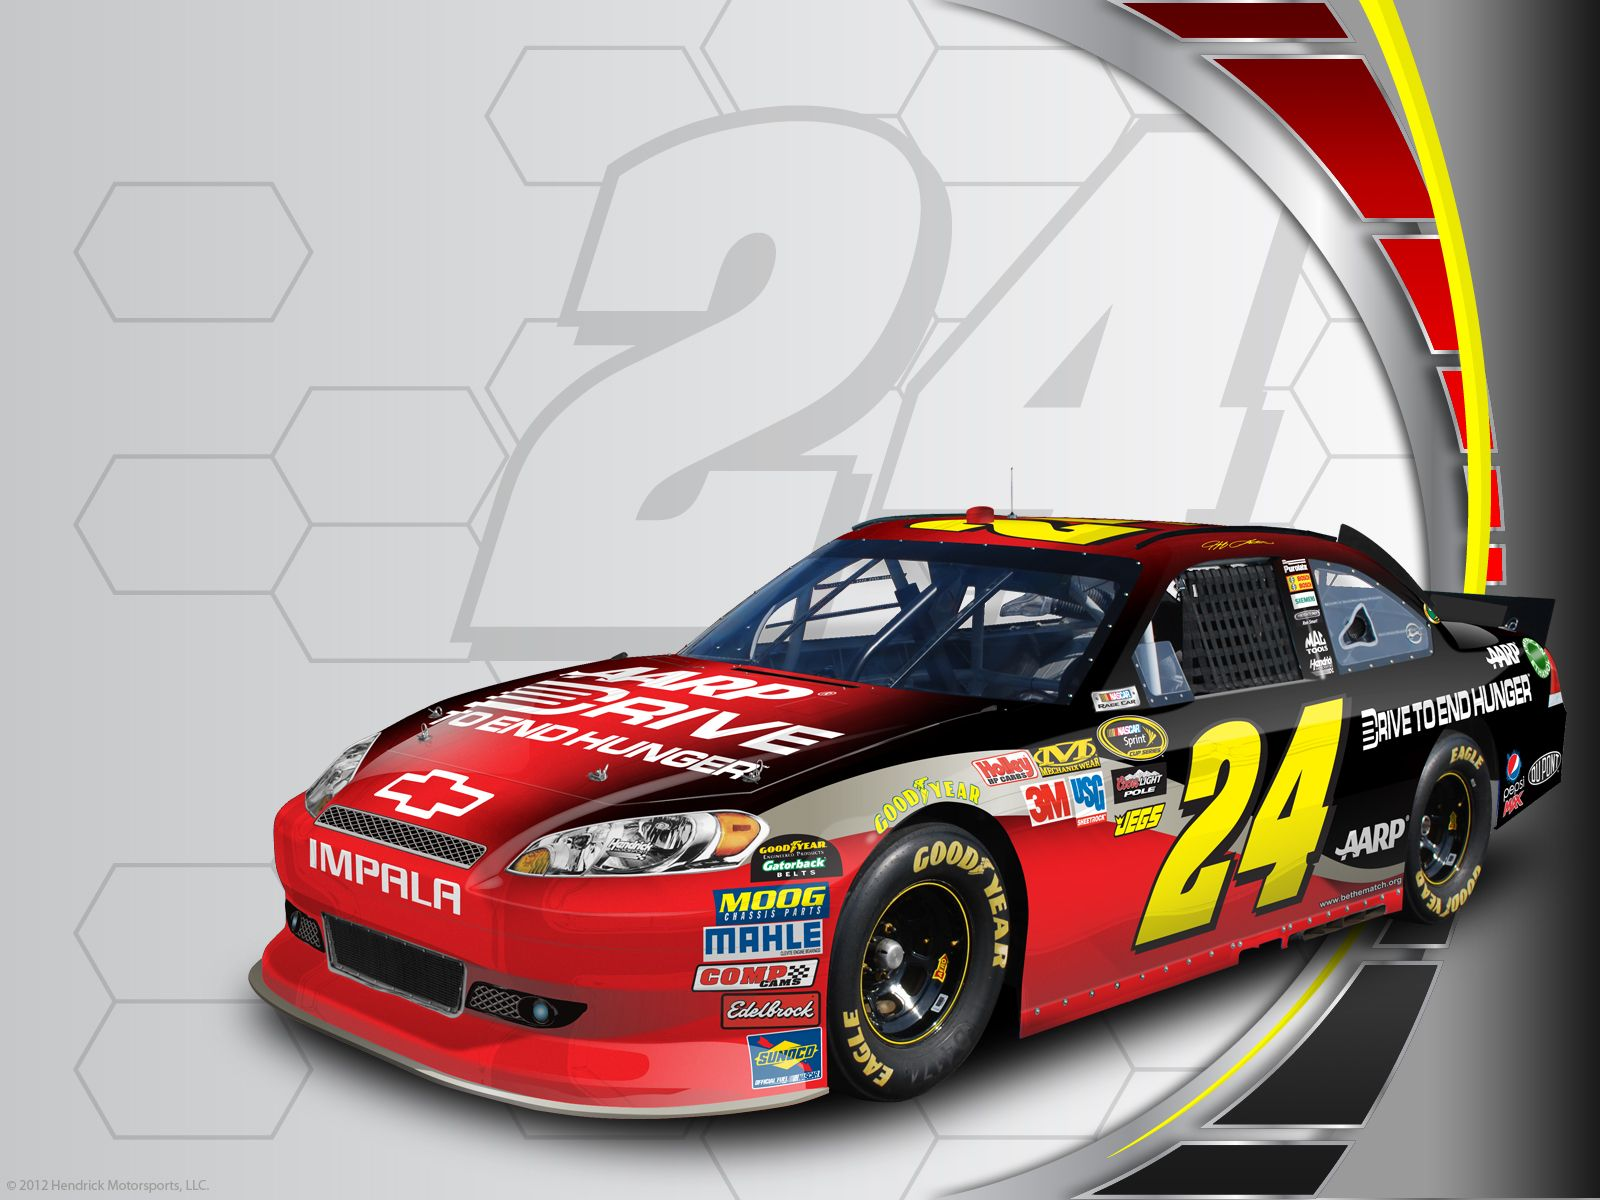 Jeff Gordon S No 24 Drive To End Hunger Chevrolet Desktop Wallpaper Nascar Racing Nascar Race Cars Nascar 24